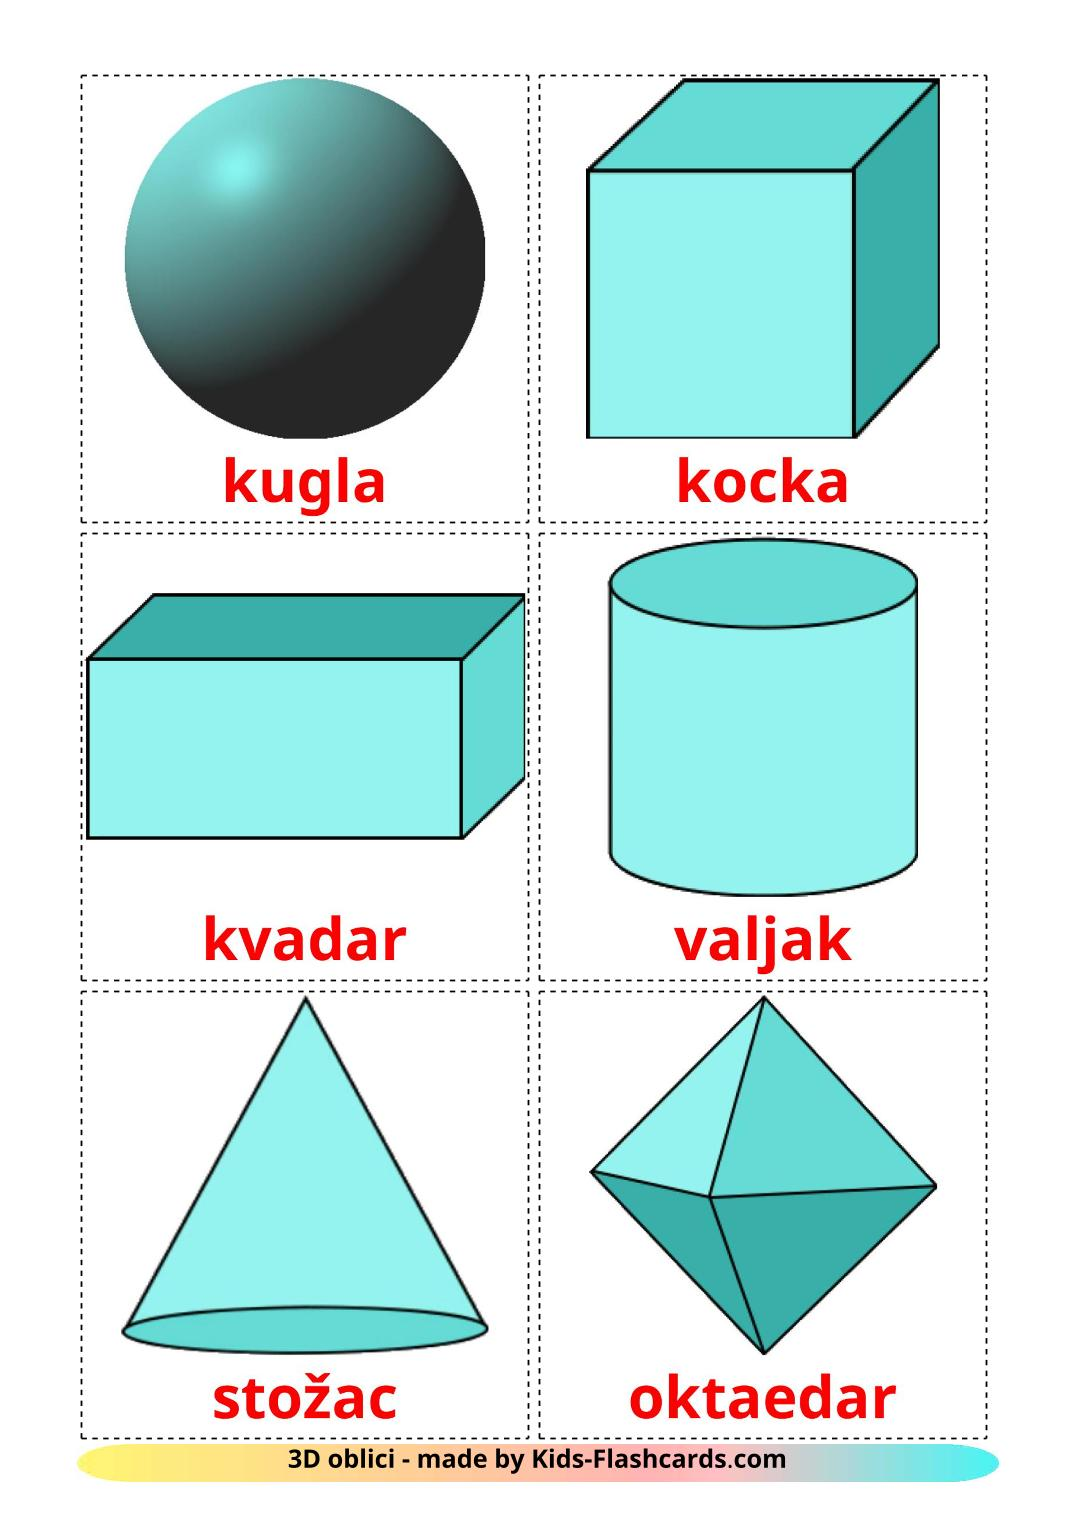 3D Shapes - 17 Free Printable croatian Flashcards